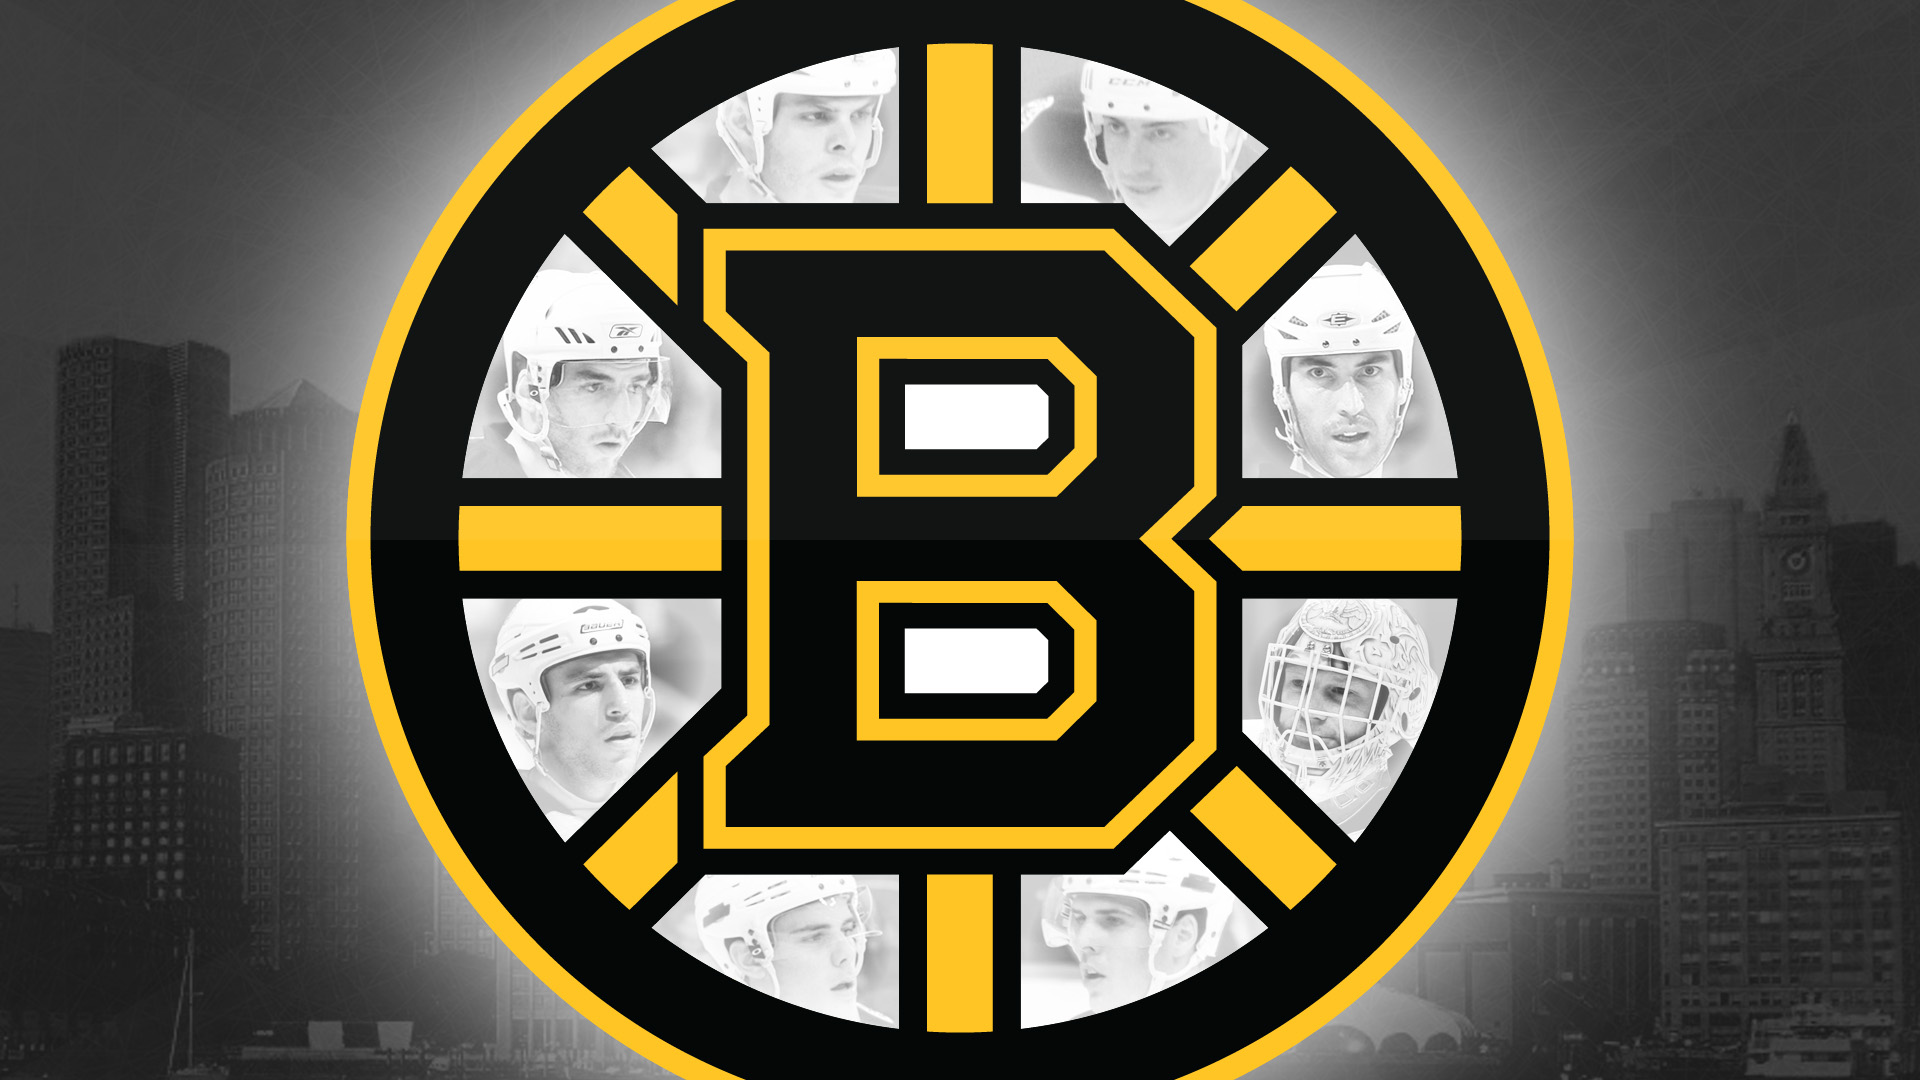 Bruins-hd-wallpaper-wp3603725